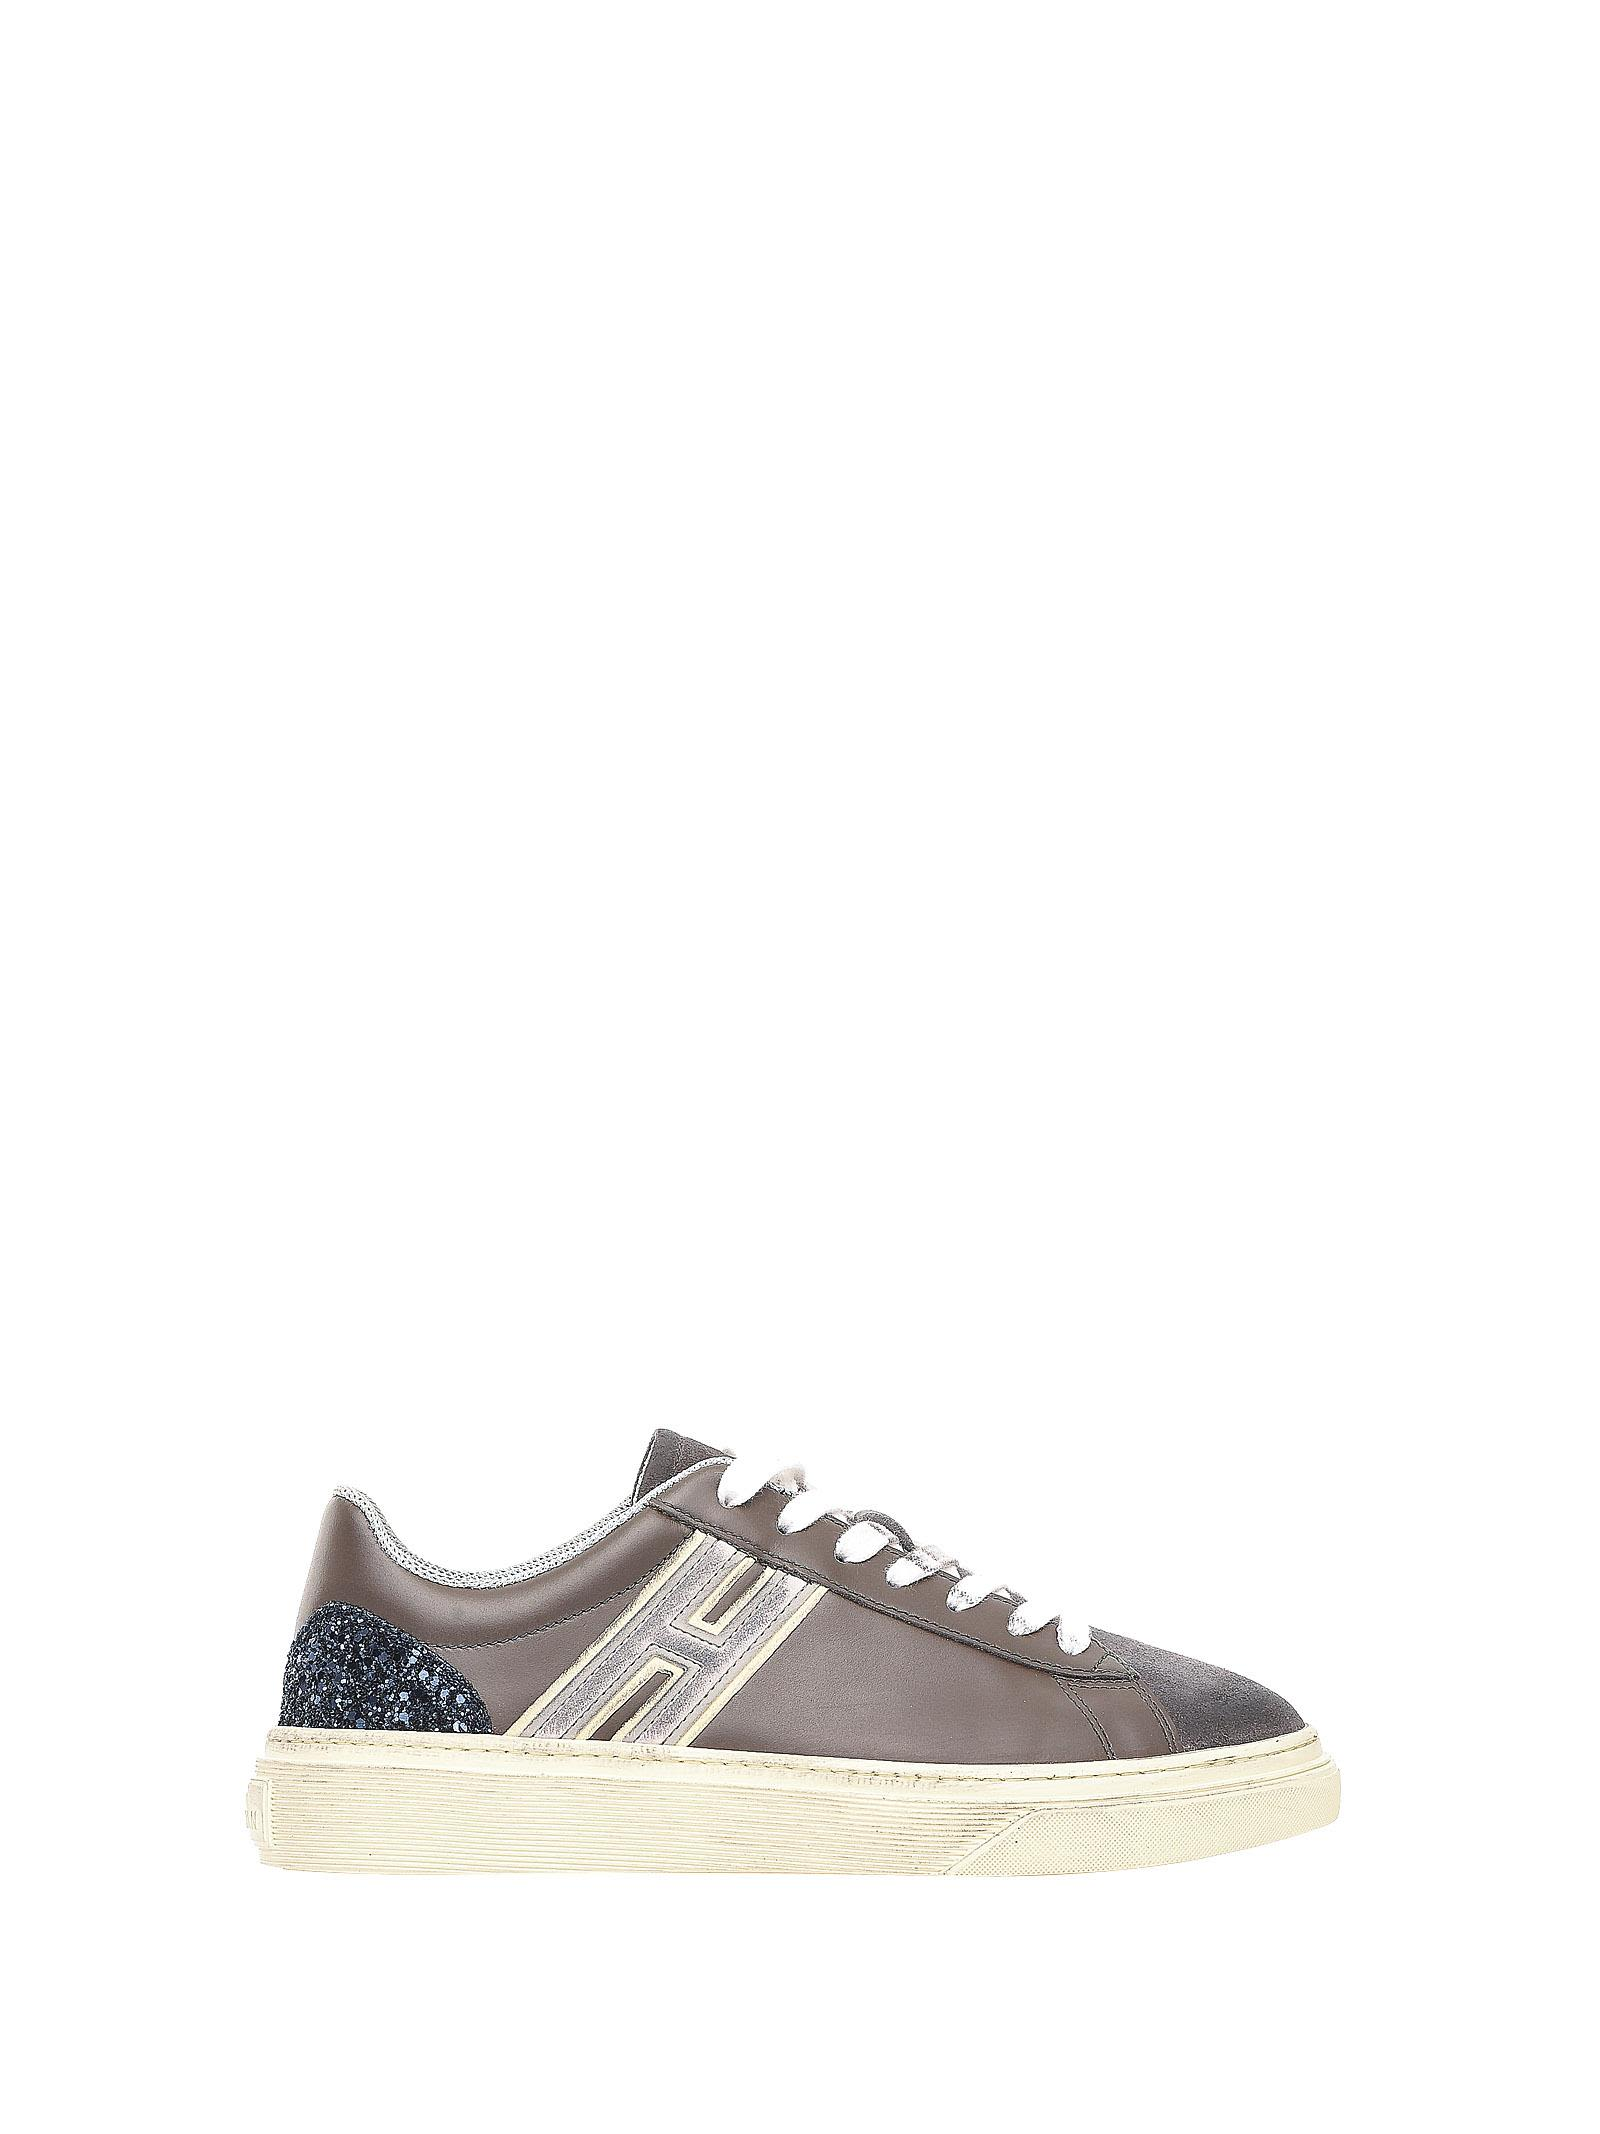 Hogan Sneakers H340 Brown-grey-glitter